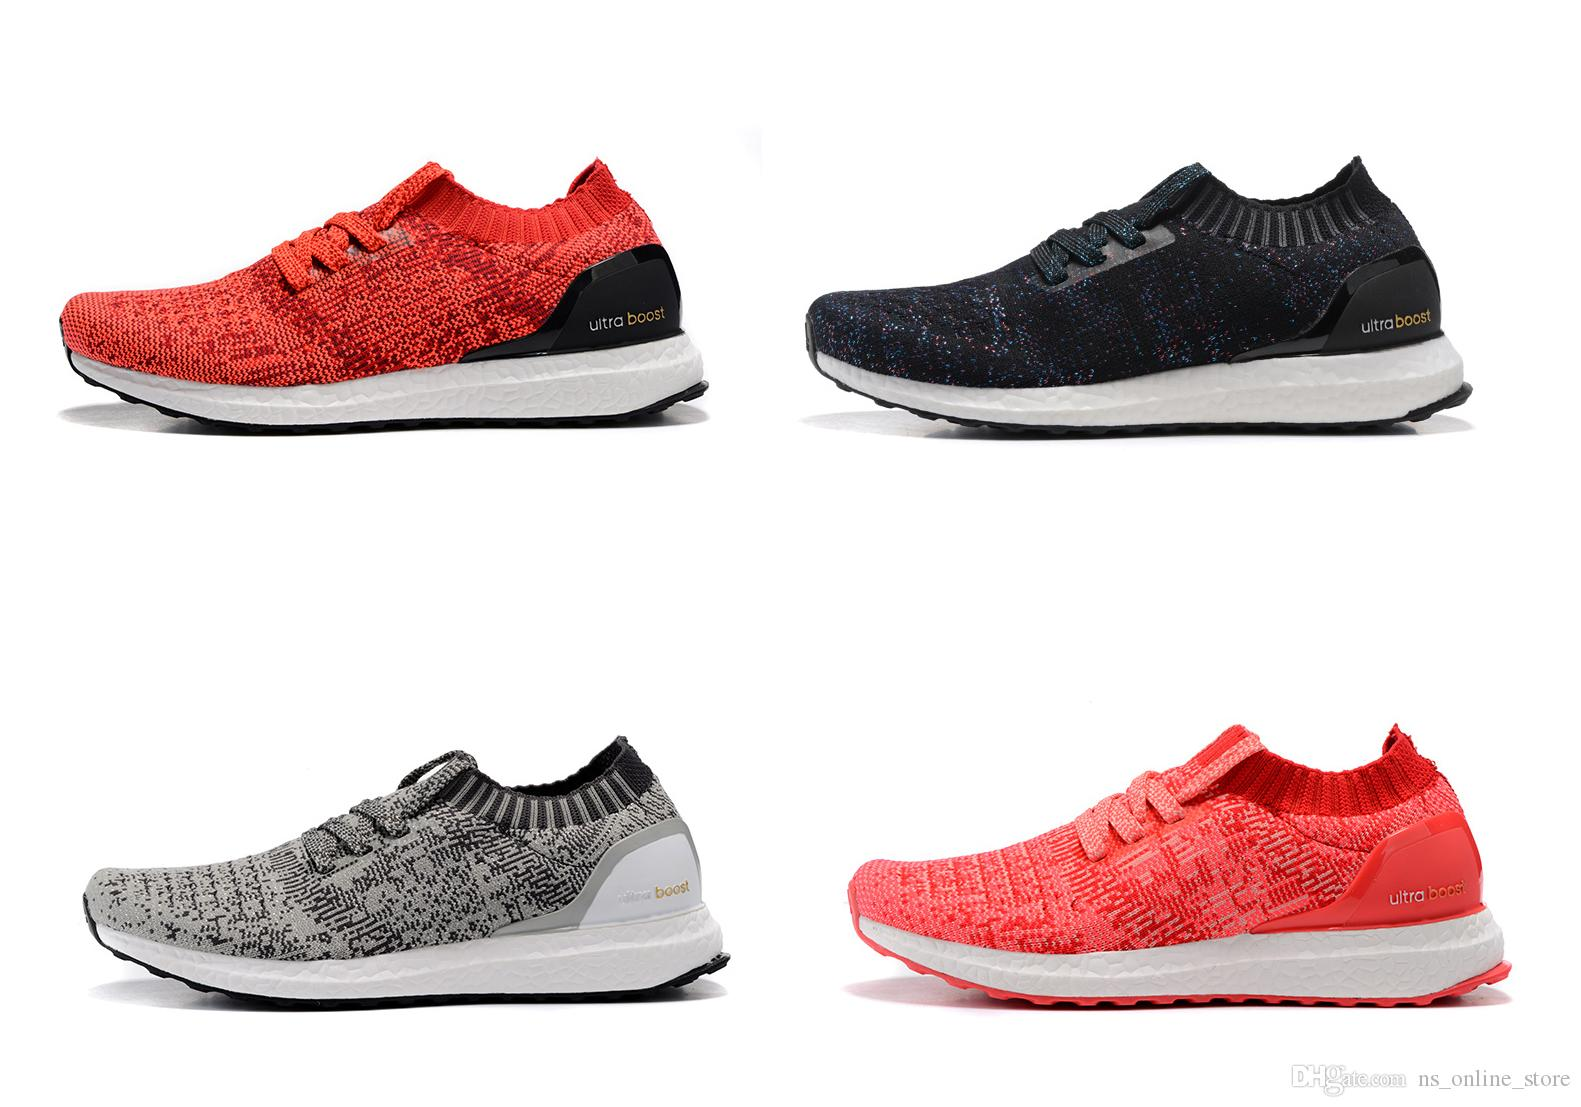 fb86da0976fca Ultra Boost Hypebeast Uncaged Low Cut Soft Outdoor Jogging Sneakers Sports  Running Breathable Shoes For Men Women High Quality Running Clothes Sports  Shoes ...